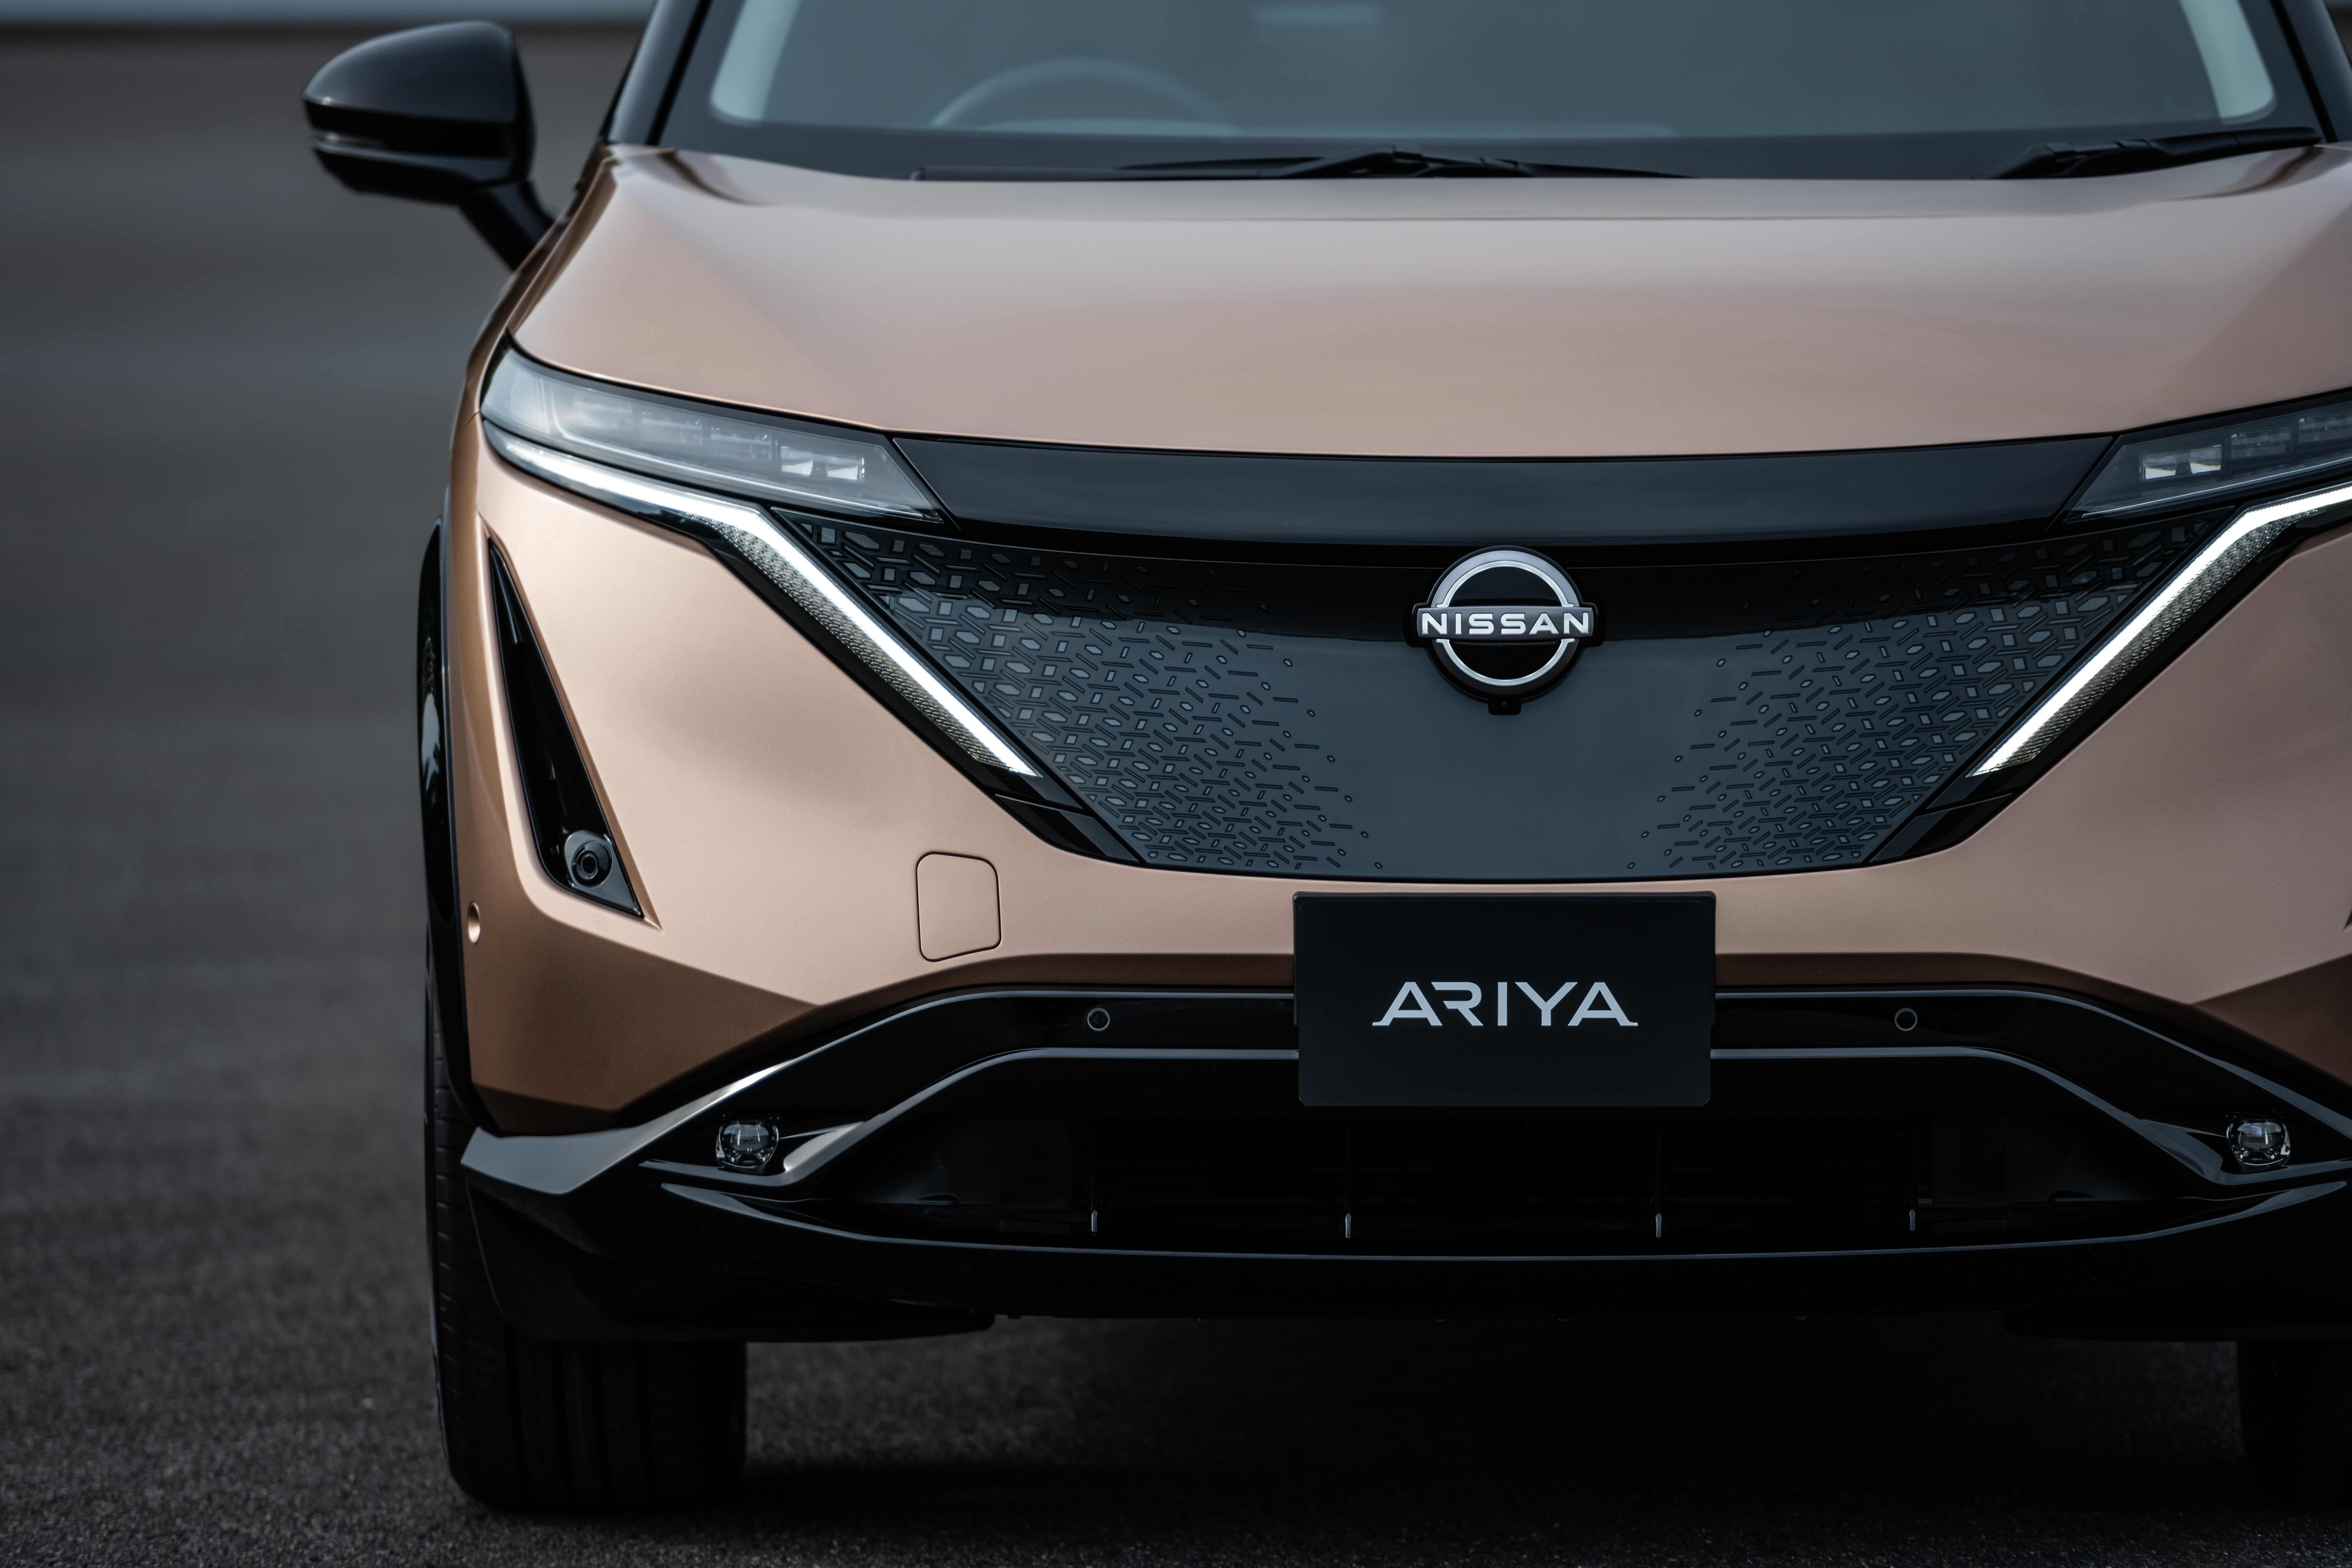 300-mile electric SUV priced to start around $40,000 — Nissan Ariya